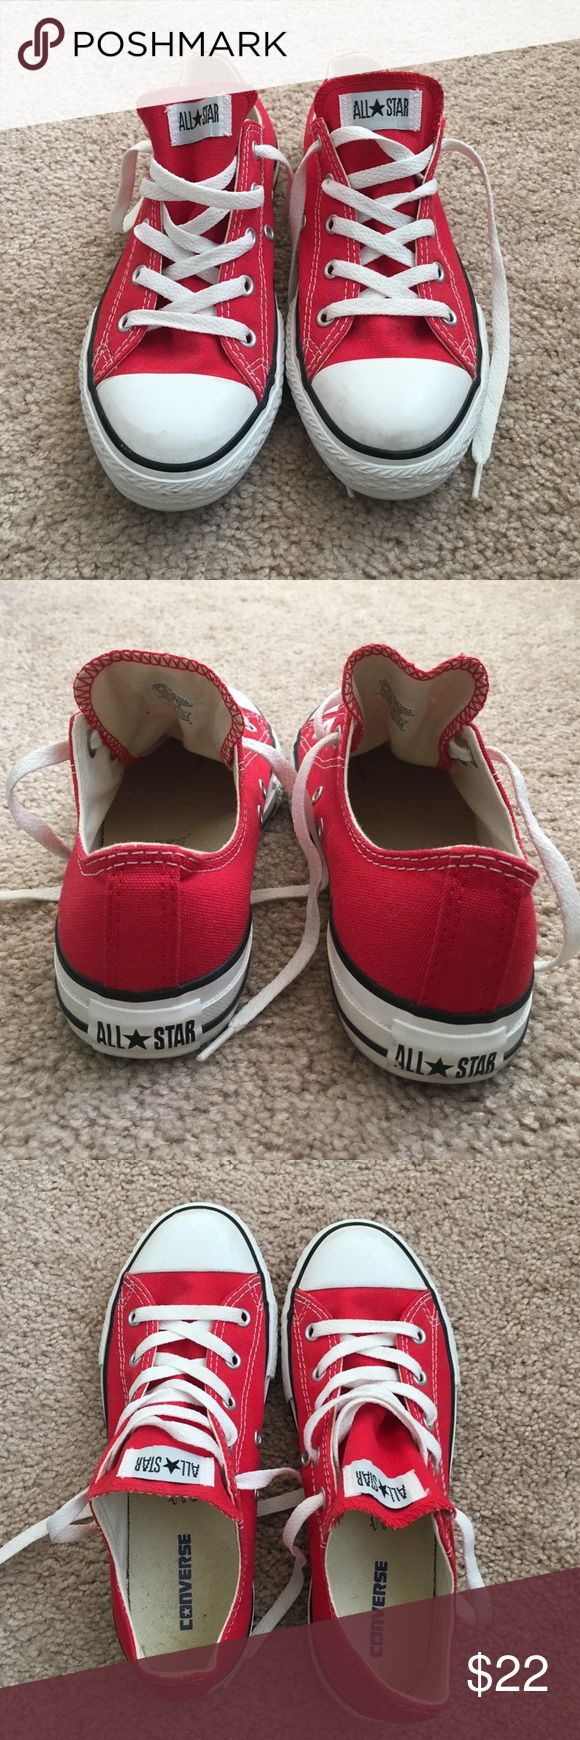 ❤️Red Converse Sneakers Red Converse Sneakers. Size 3. Lightly worn! Converse Shoes Sneakers